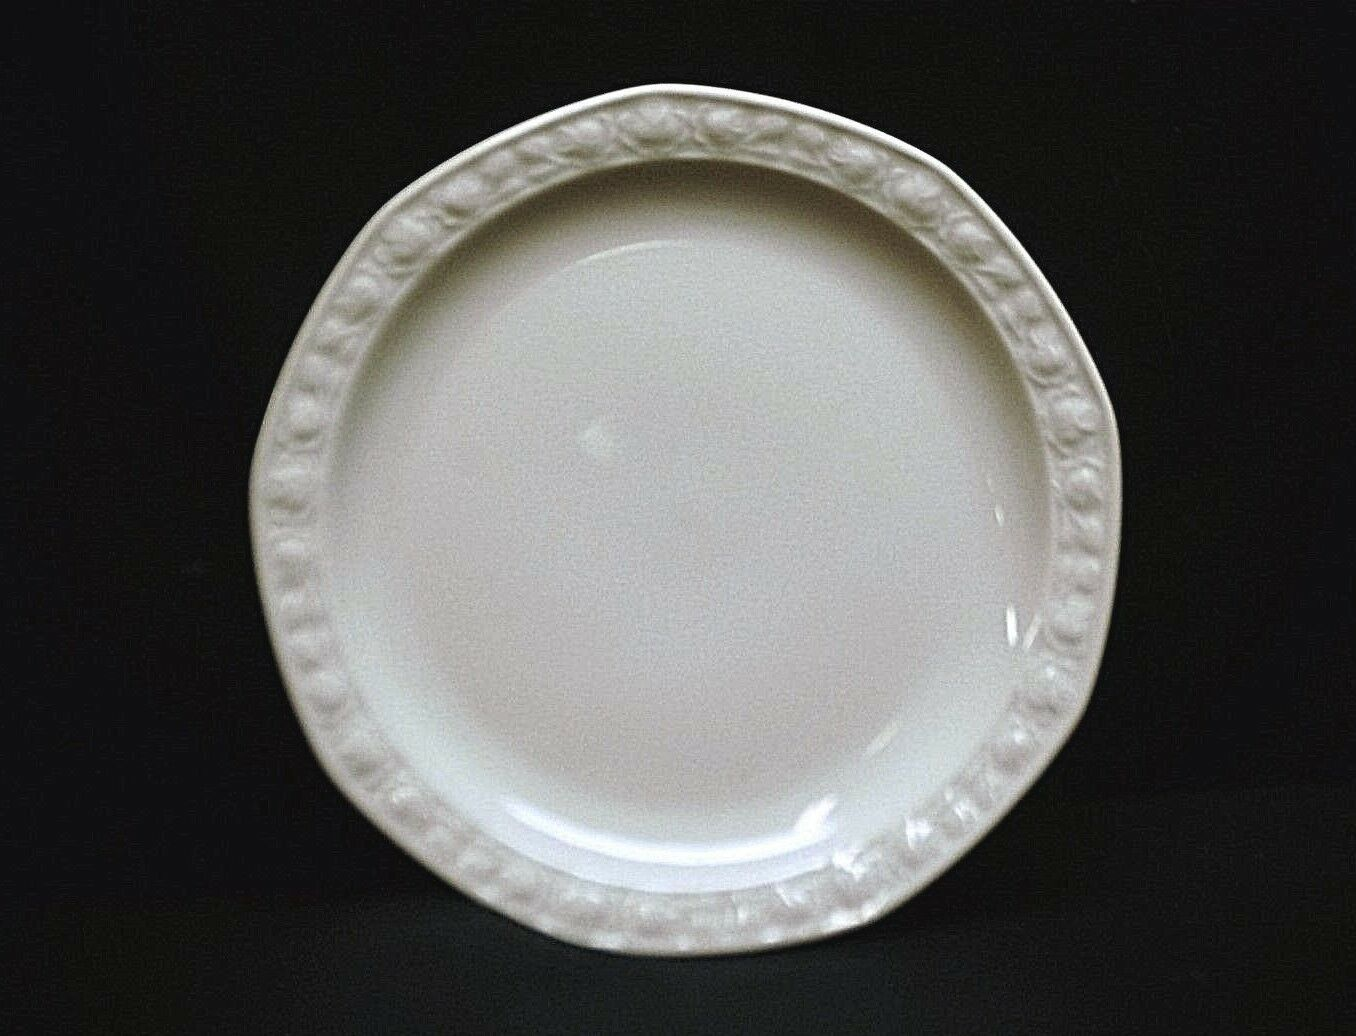 """Old Vintage Kimberly by Winterling 7-1/2"""" Salad Plate Bavaria West Germany - $14.84"""